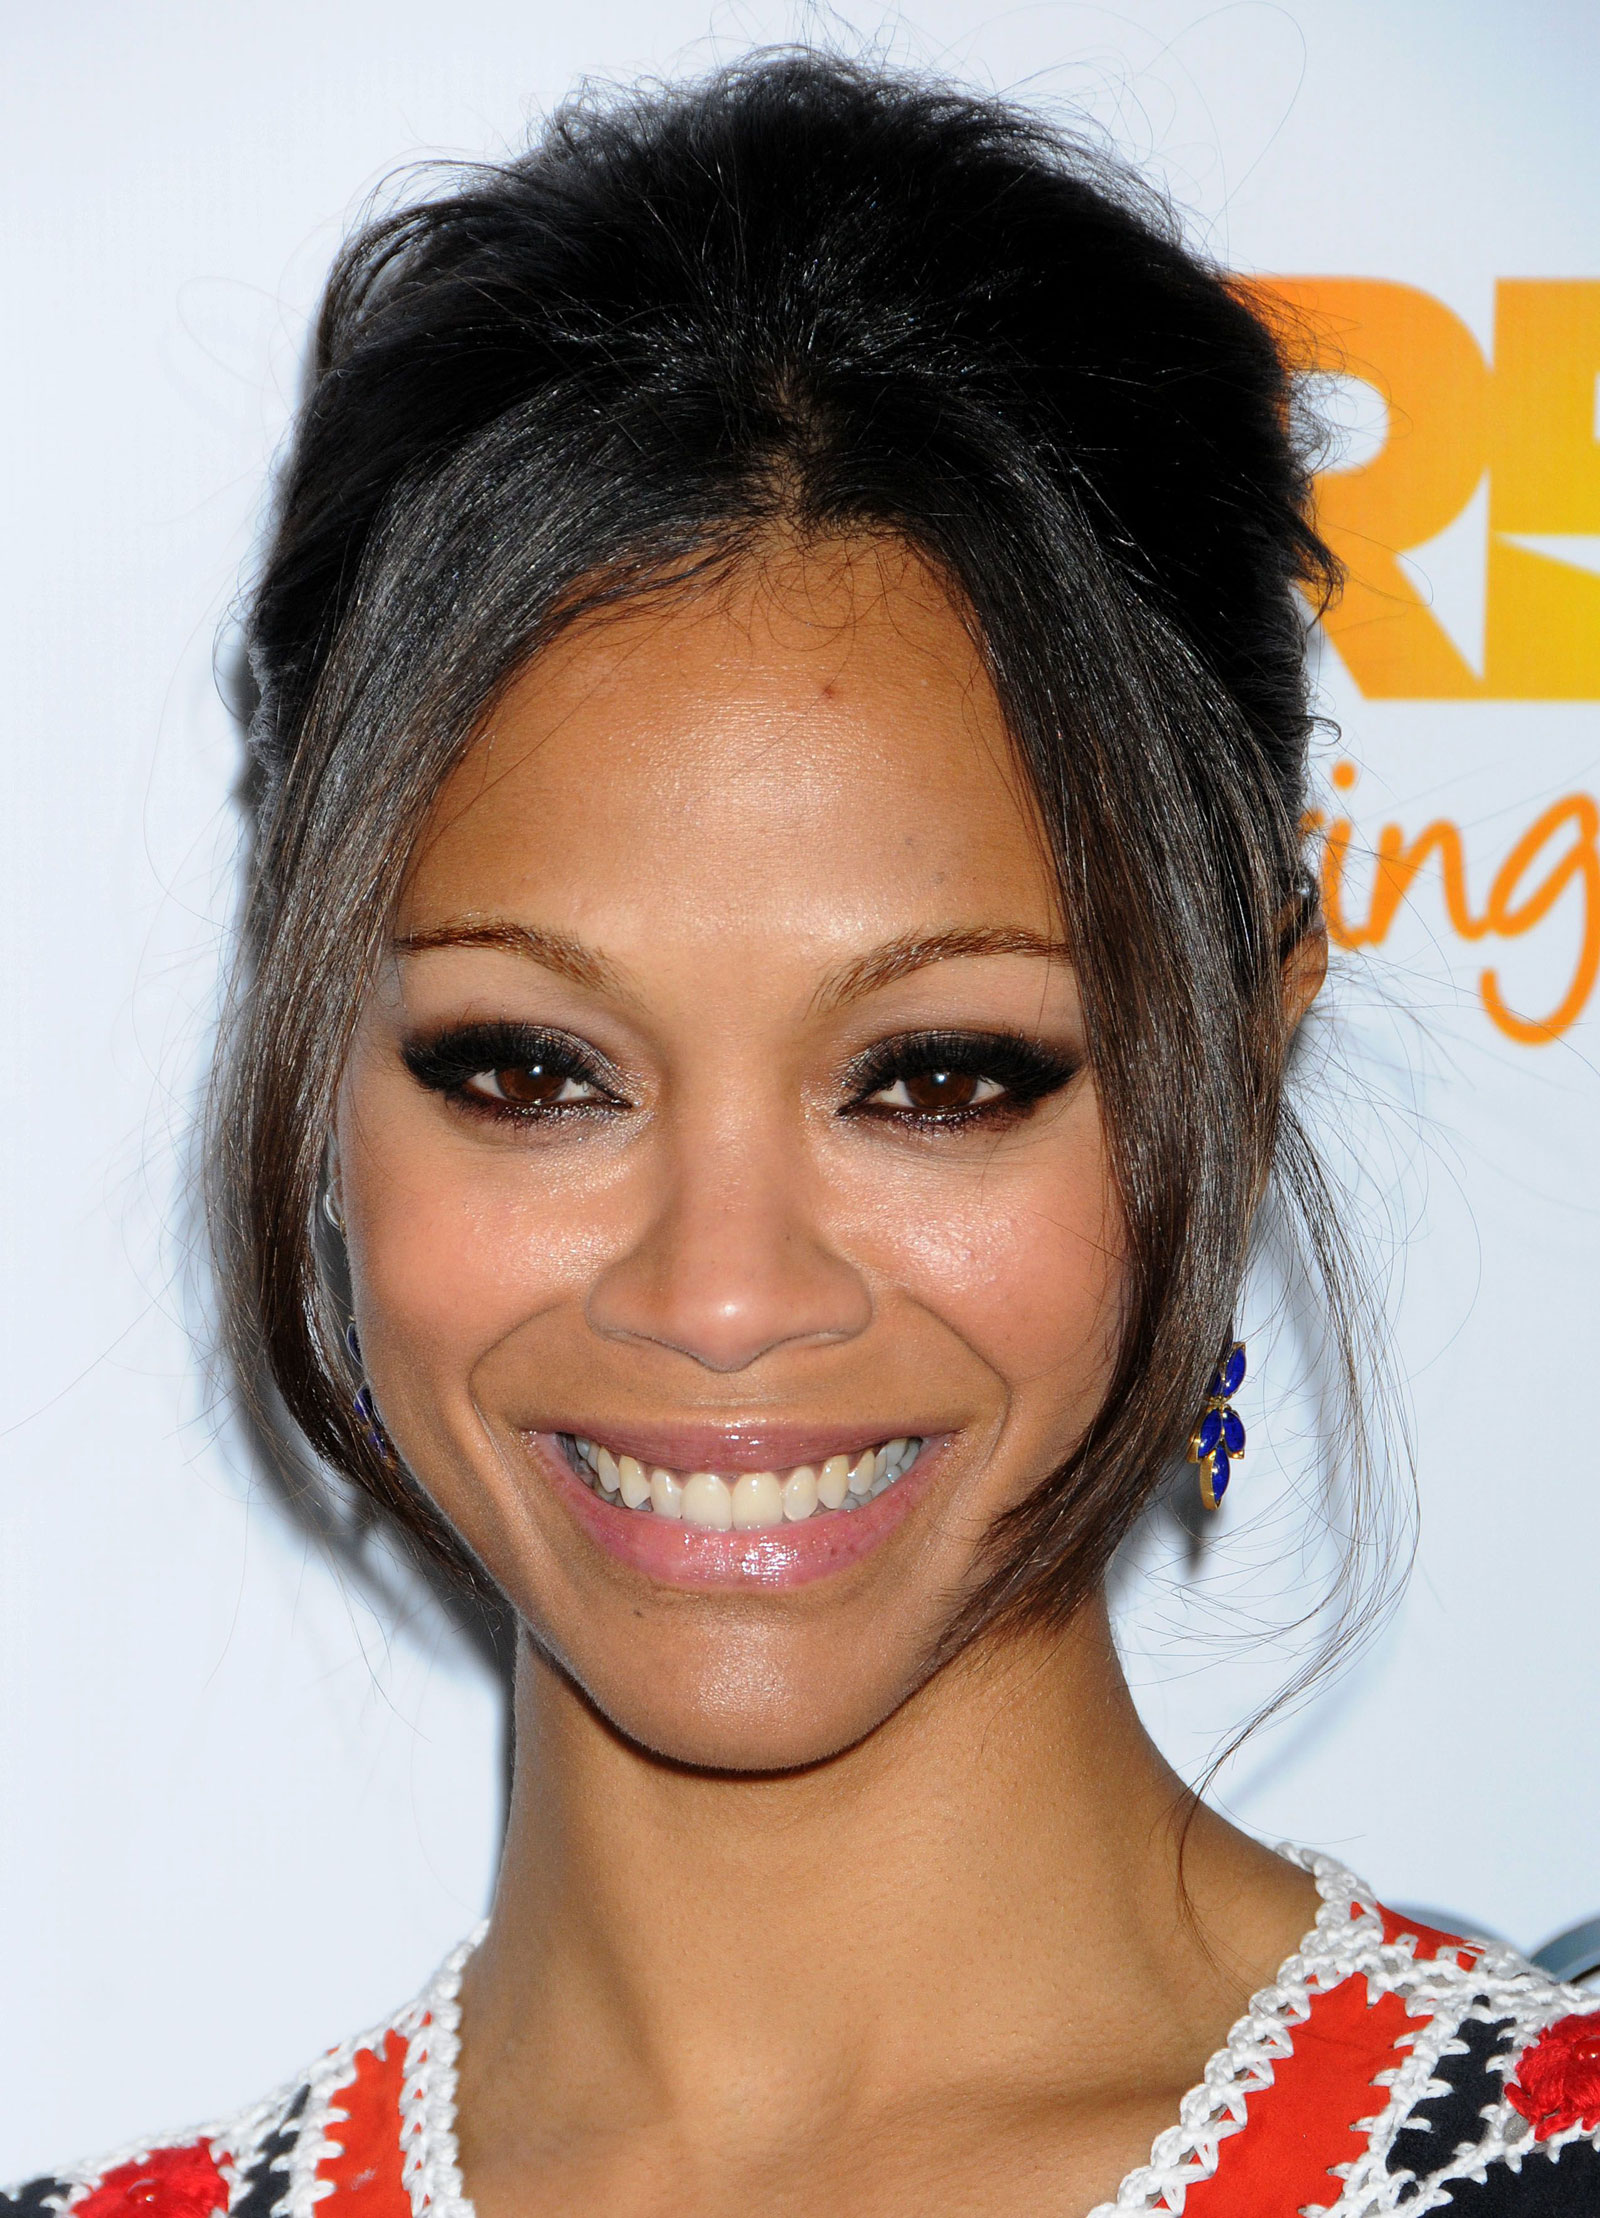 Zoe Saldana at The Trevor Projects 2011 in Los Angeles